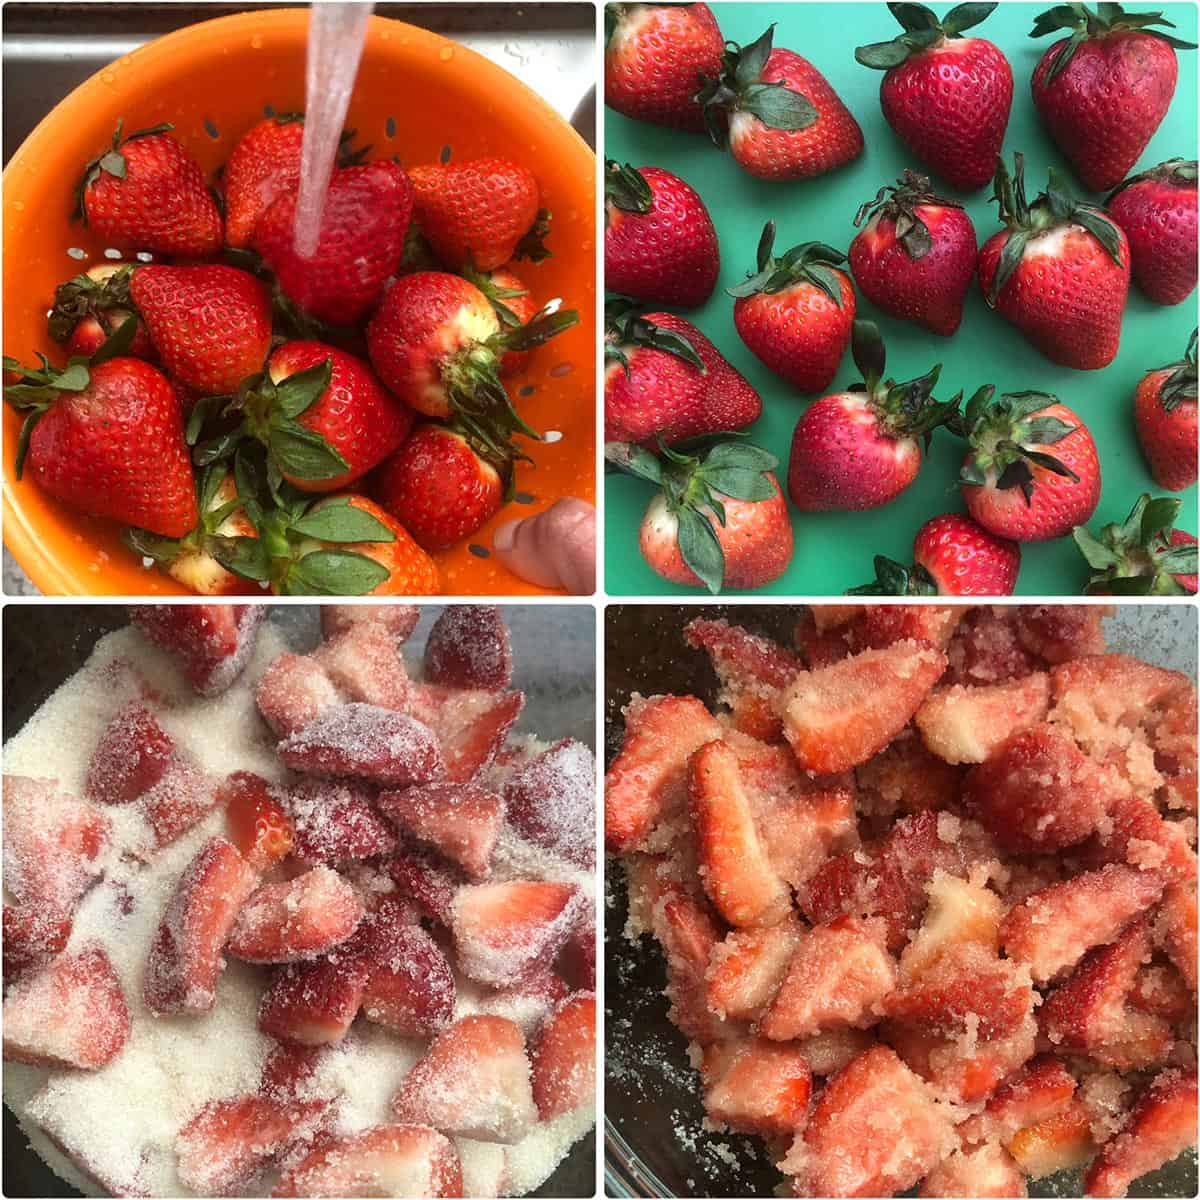 step by step photos showing cleaning berries and mixing them with sugar